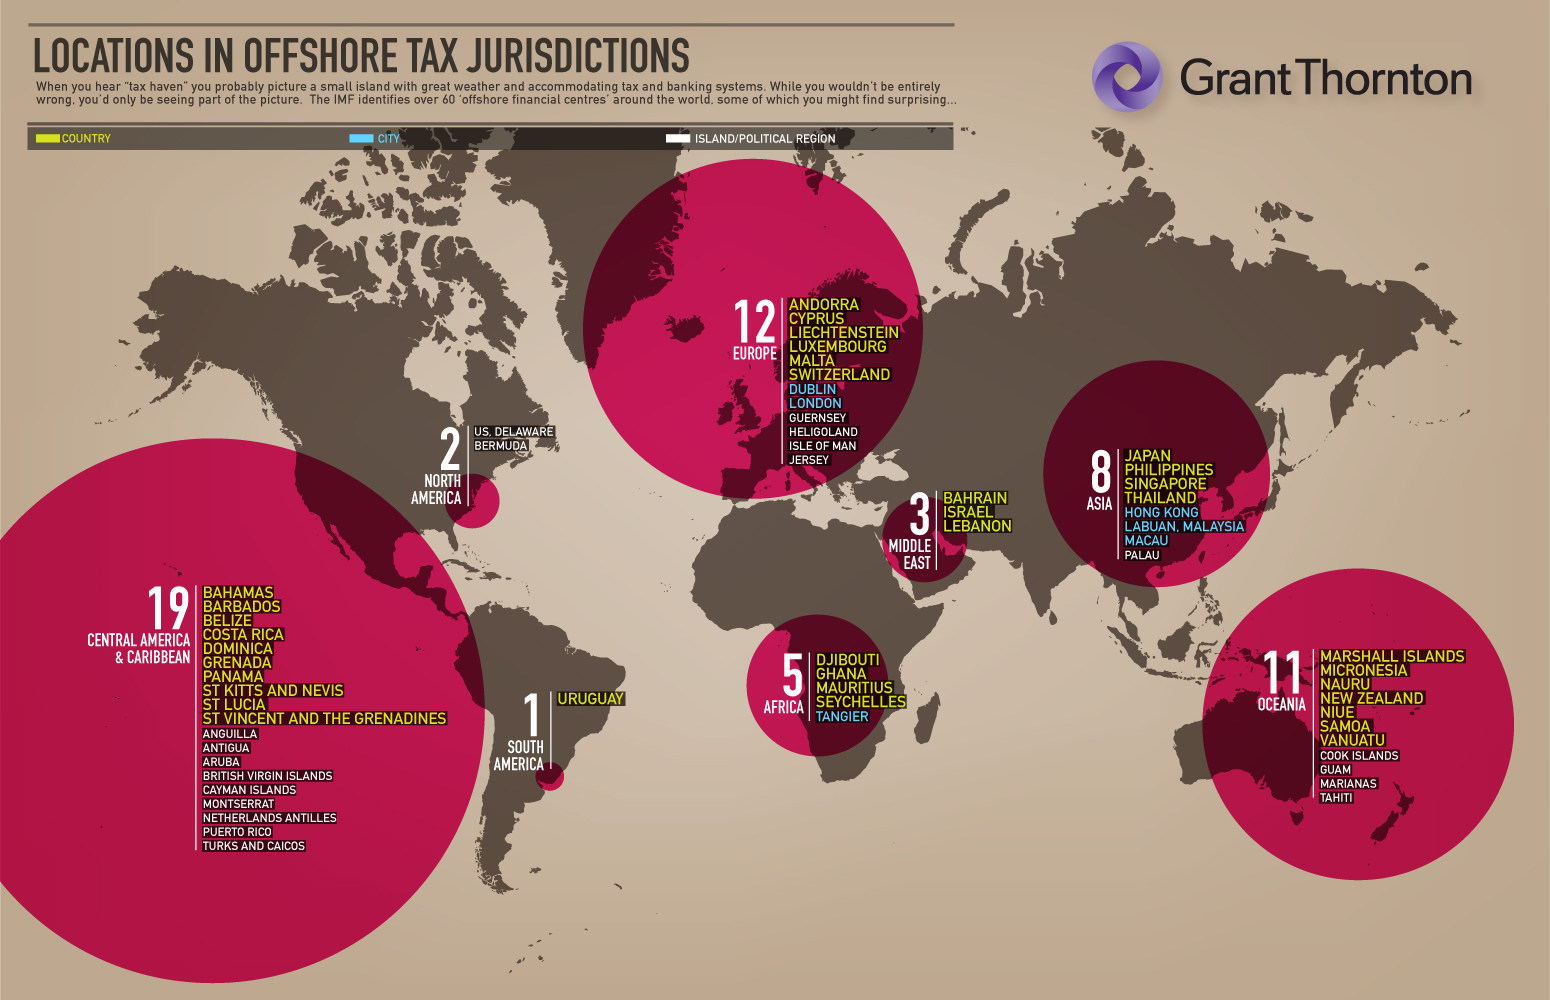 Grant Thornton International